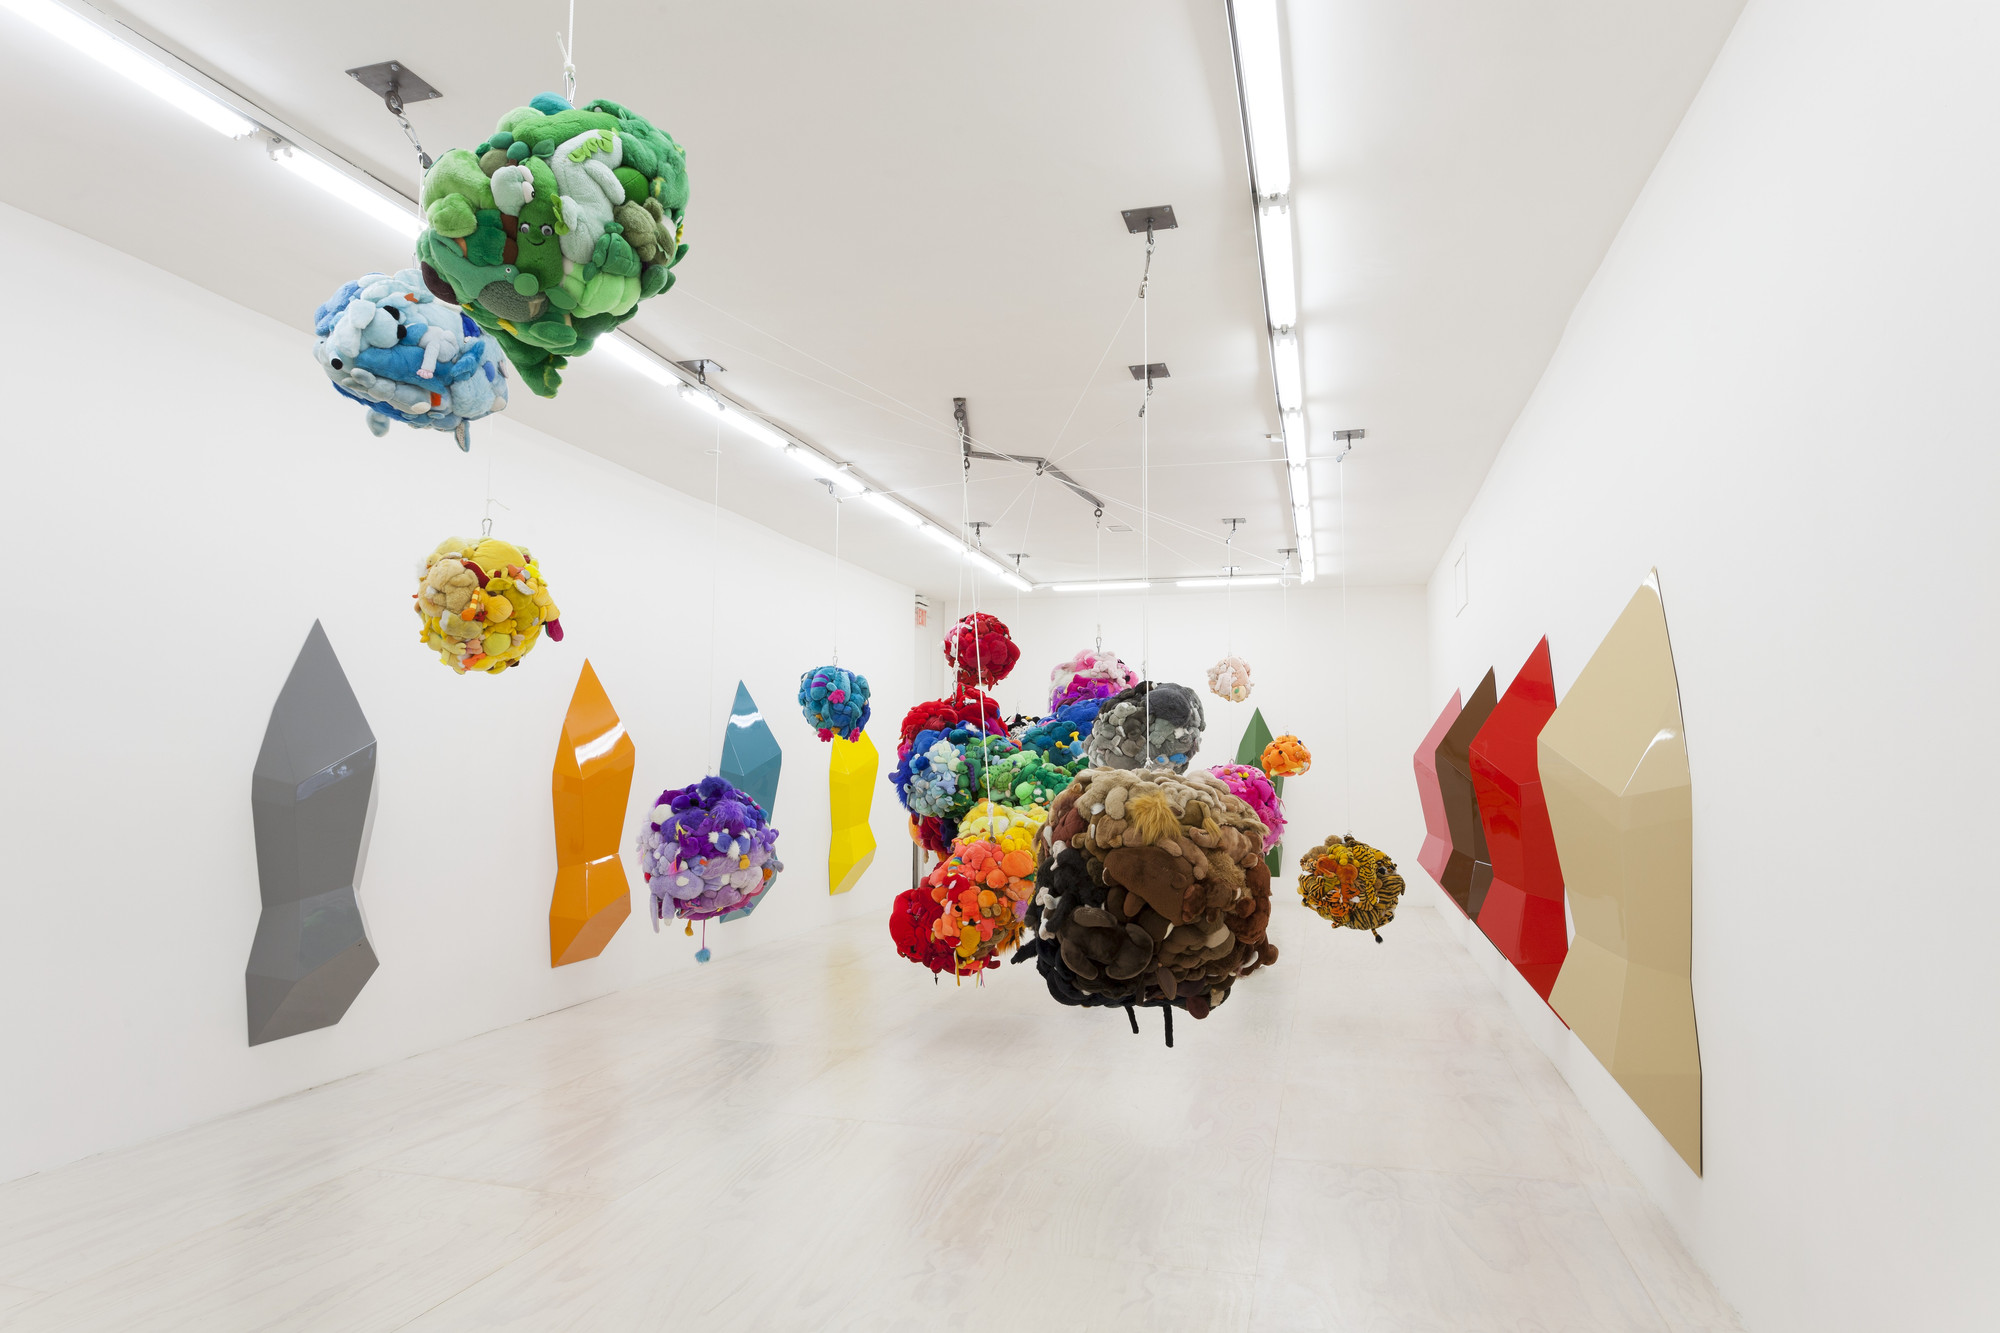 Mike Kelley. Deodorized Central Mass with Satellites. 1991/1999